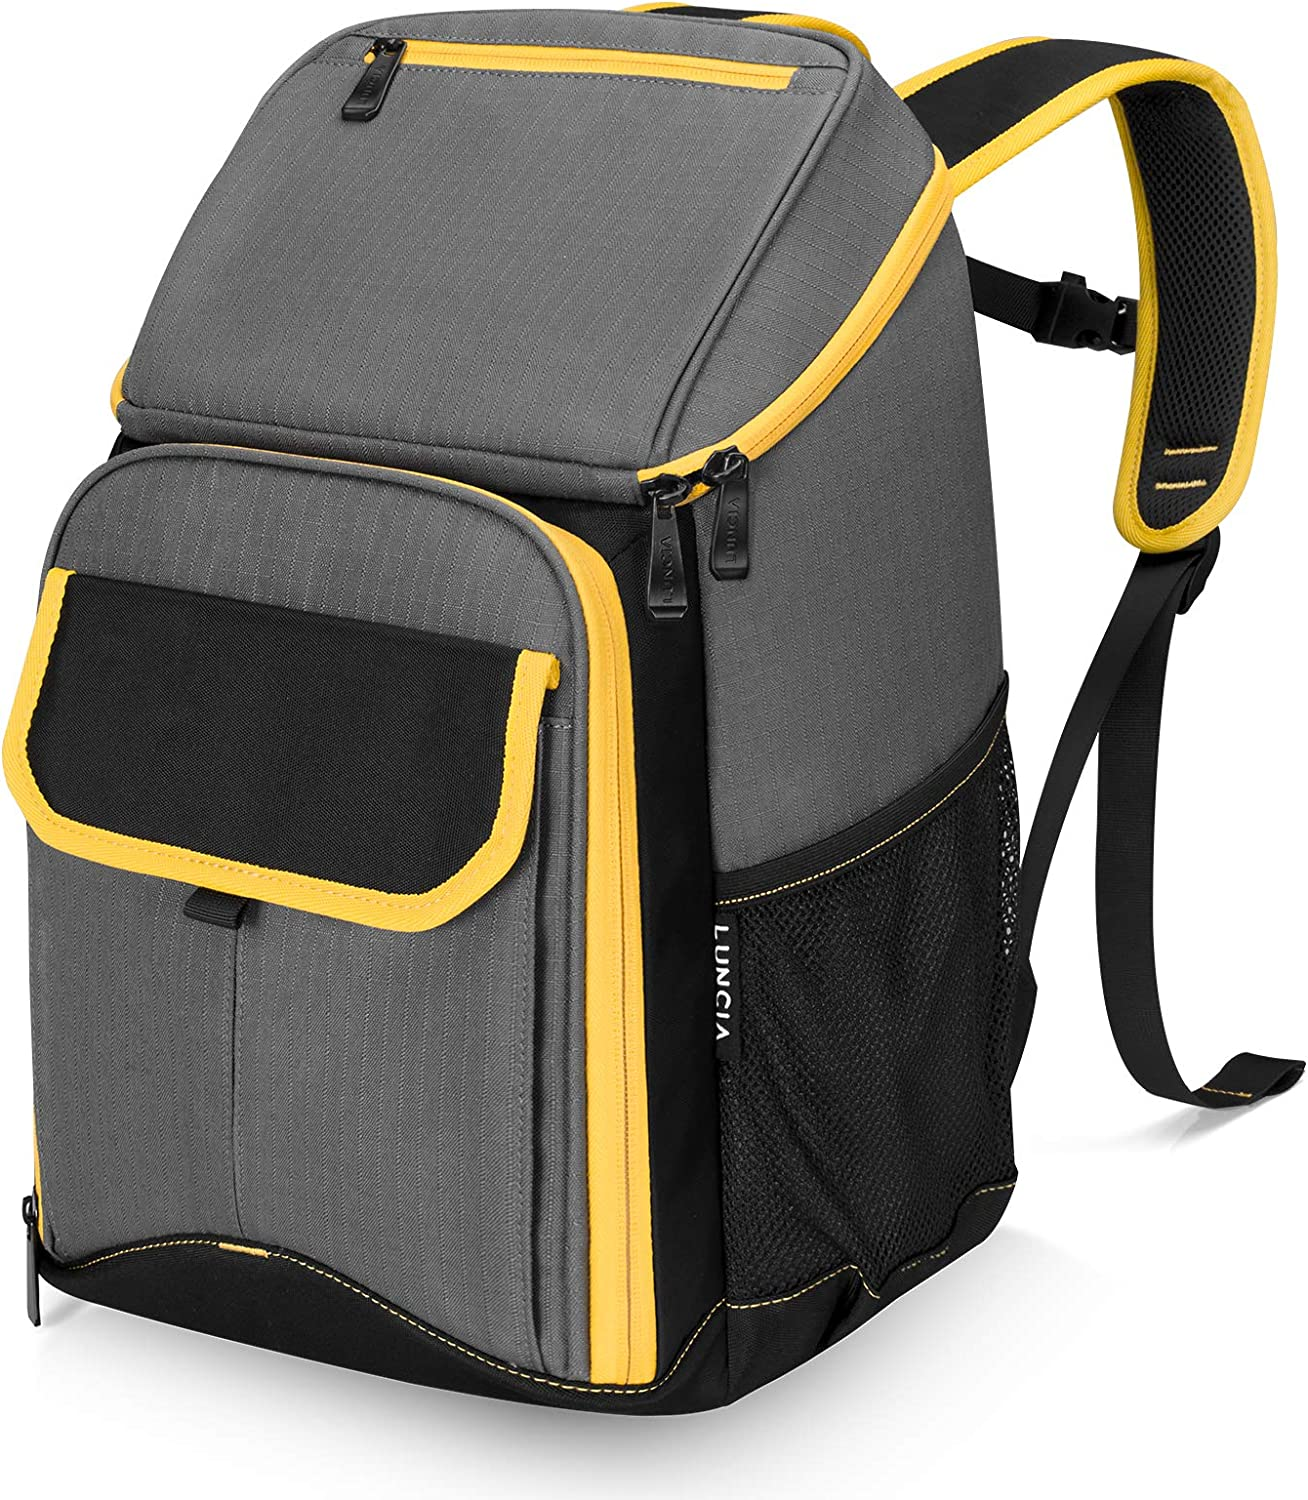 LUNCIA Cooler Backpack 18L 25-Can Waterproof Insulated Soft Collapsible Cooler Bag Sand-Free, Leakproof Soft-Sided Cooling Bag for Camping/Hiking/Beach/Picnic/Day Trips, Grey